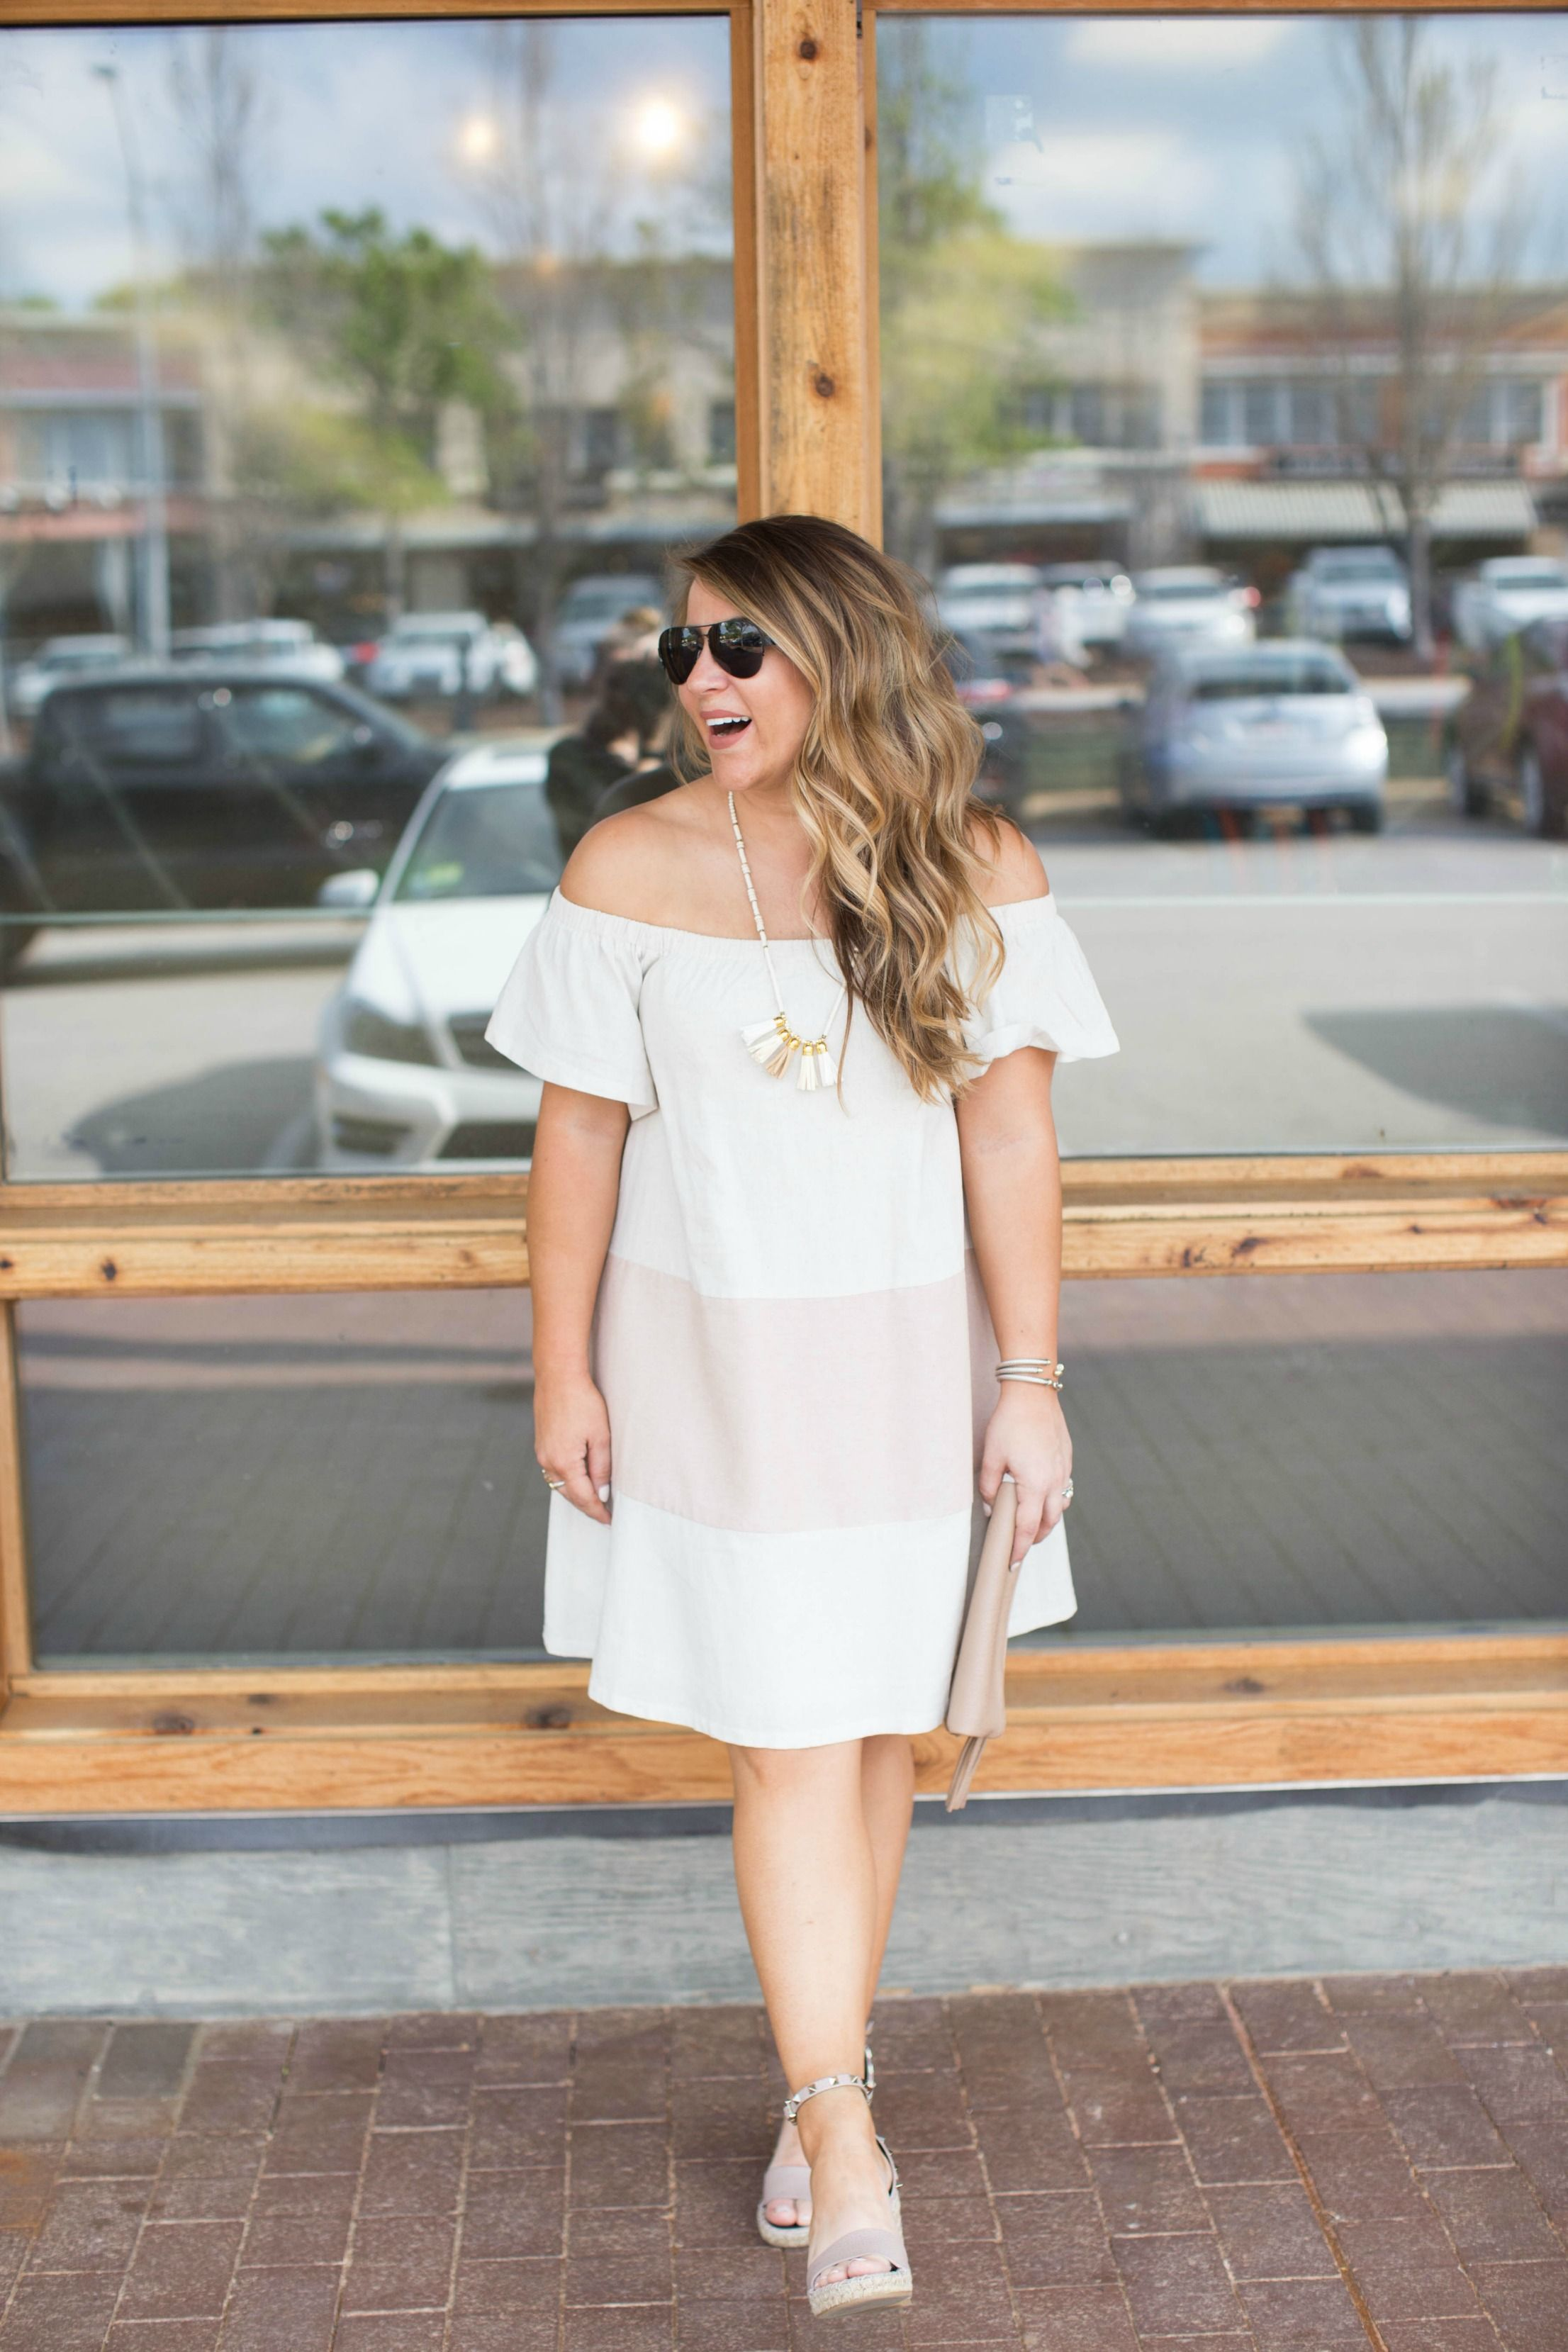 cdf903ddeed5 Off the shoulder dress - a spring dress makes for the easiest spring outfit  idea! Add some accessories and you re set. Click through for more on this  simple ...